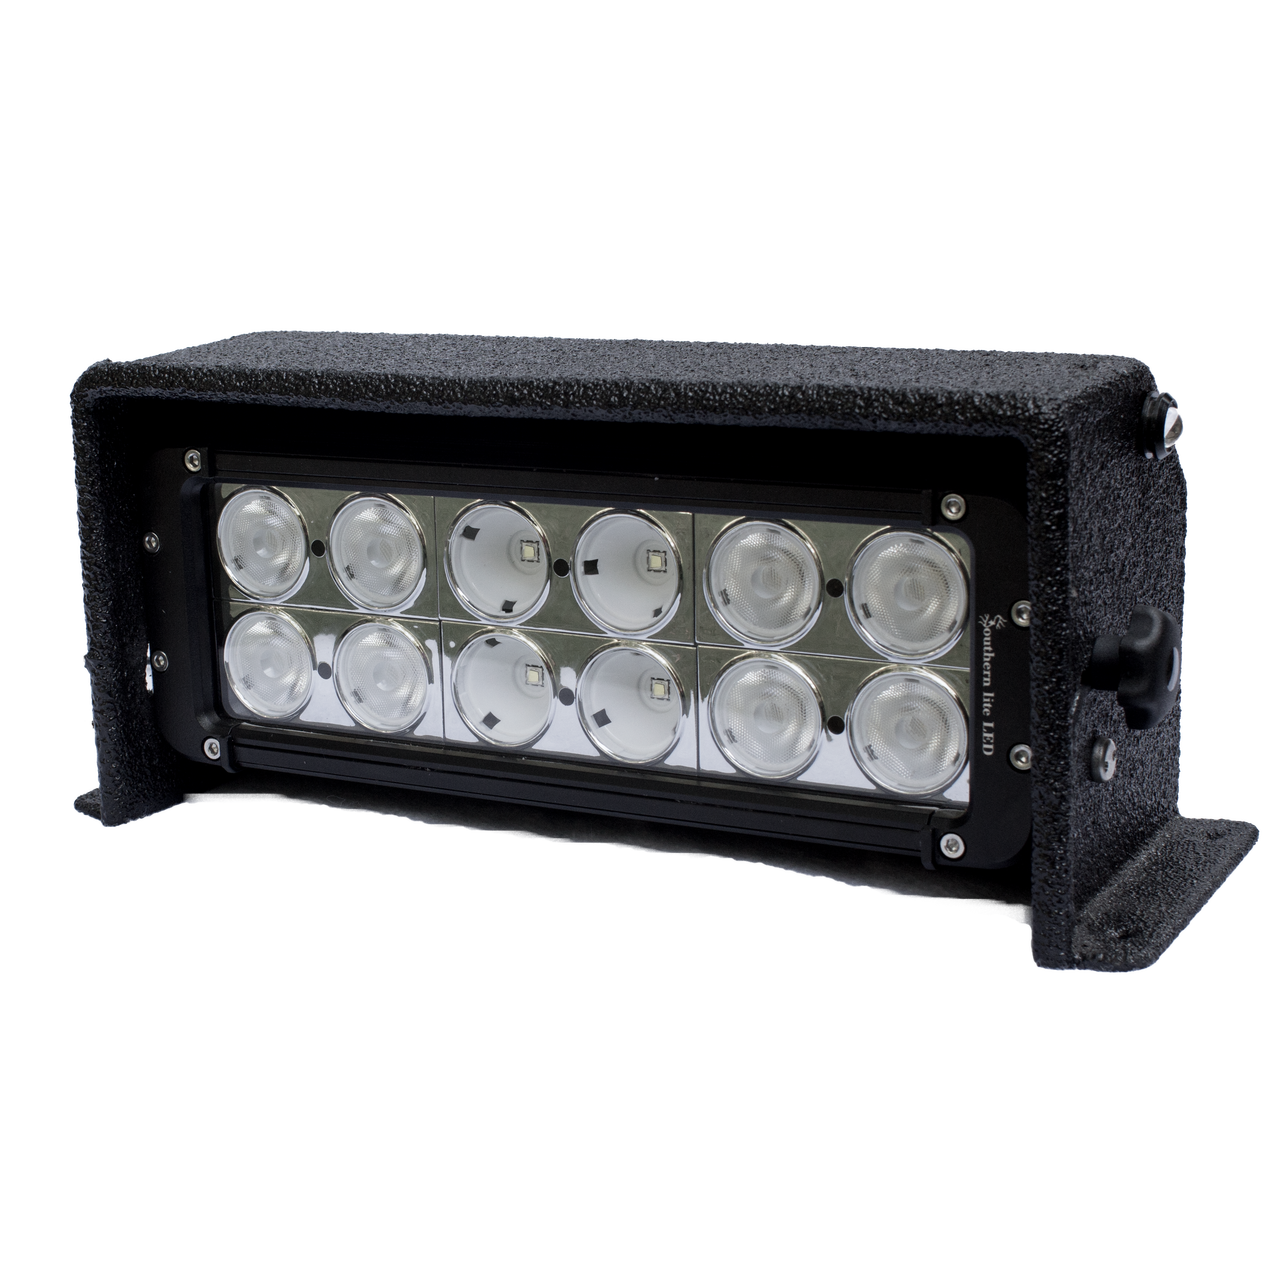 Sll Gen2 Duck Boat Light Brightest Extreme Projection